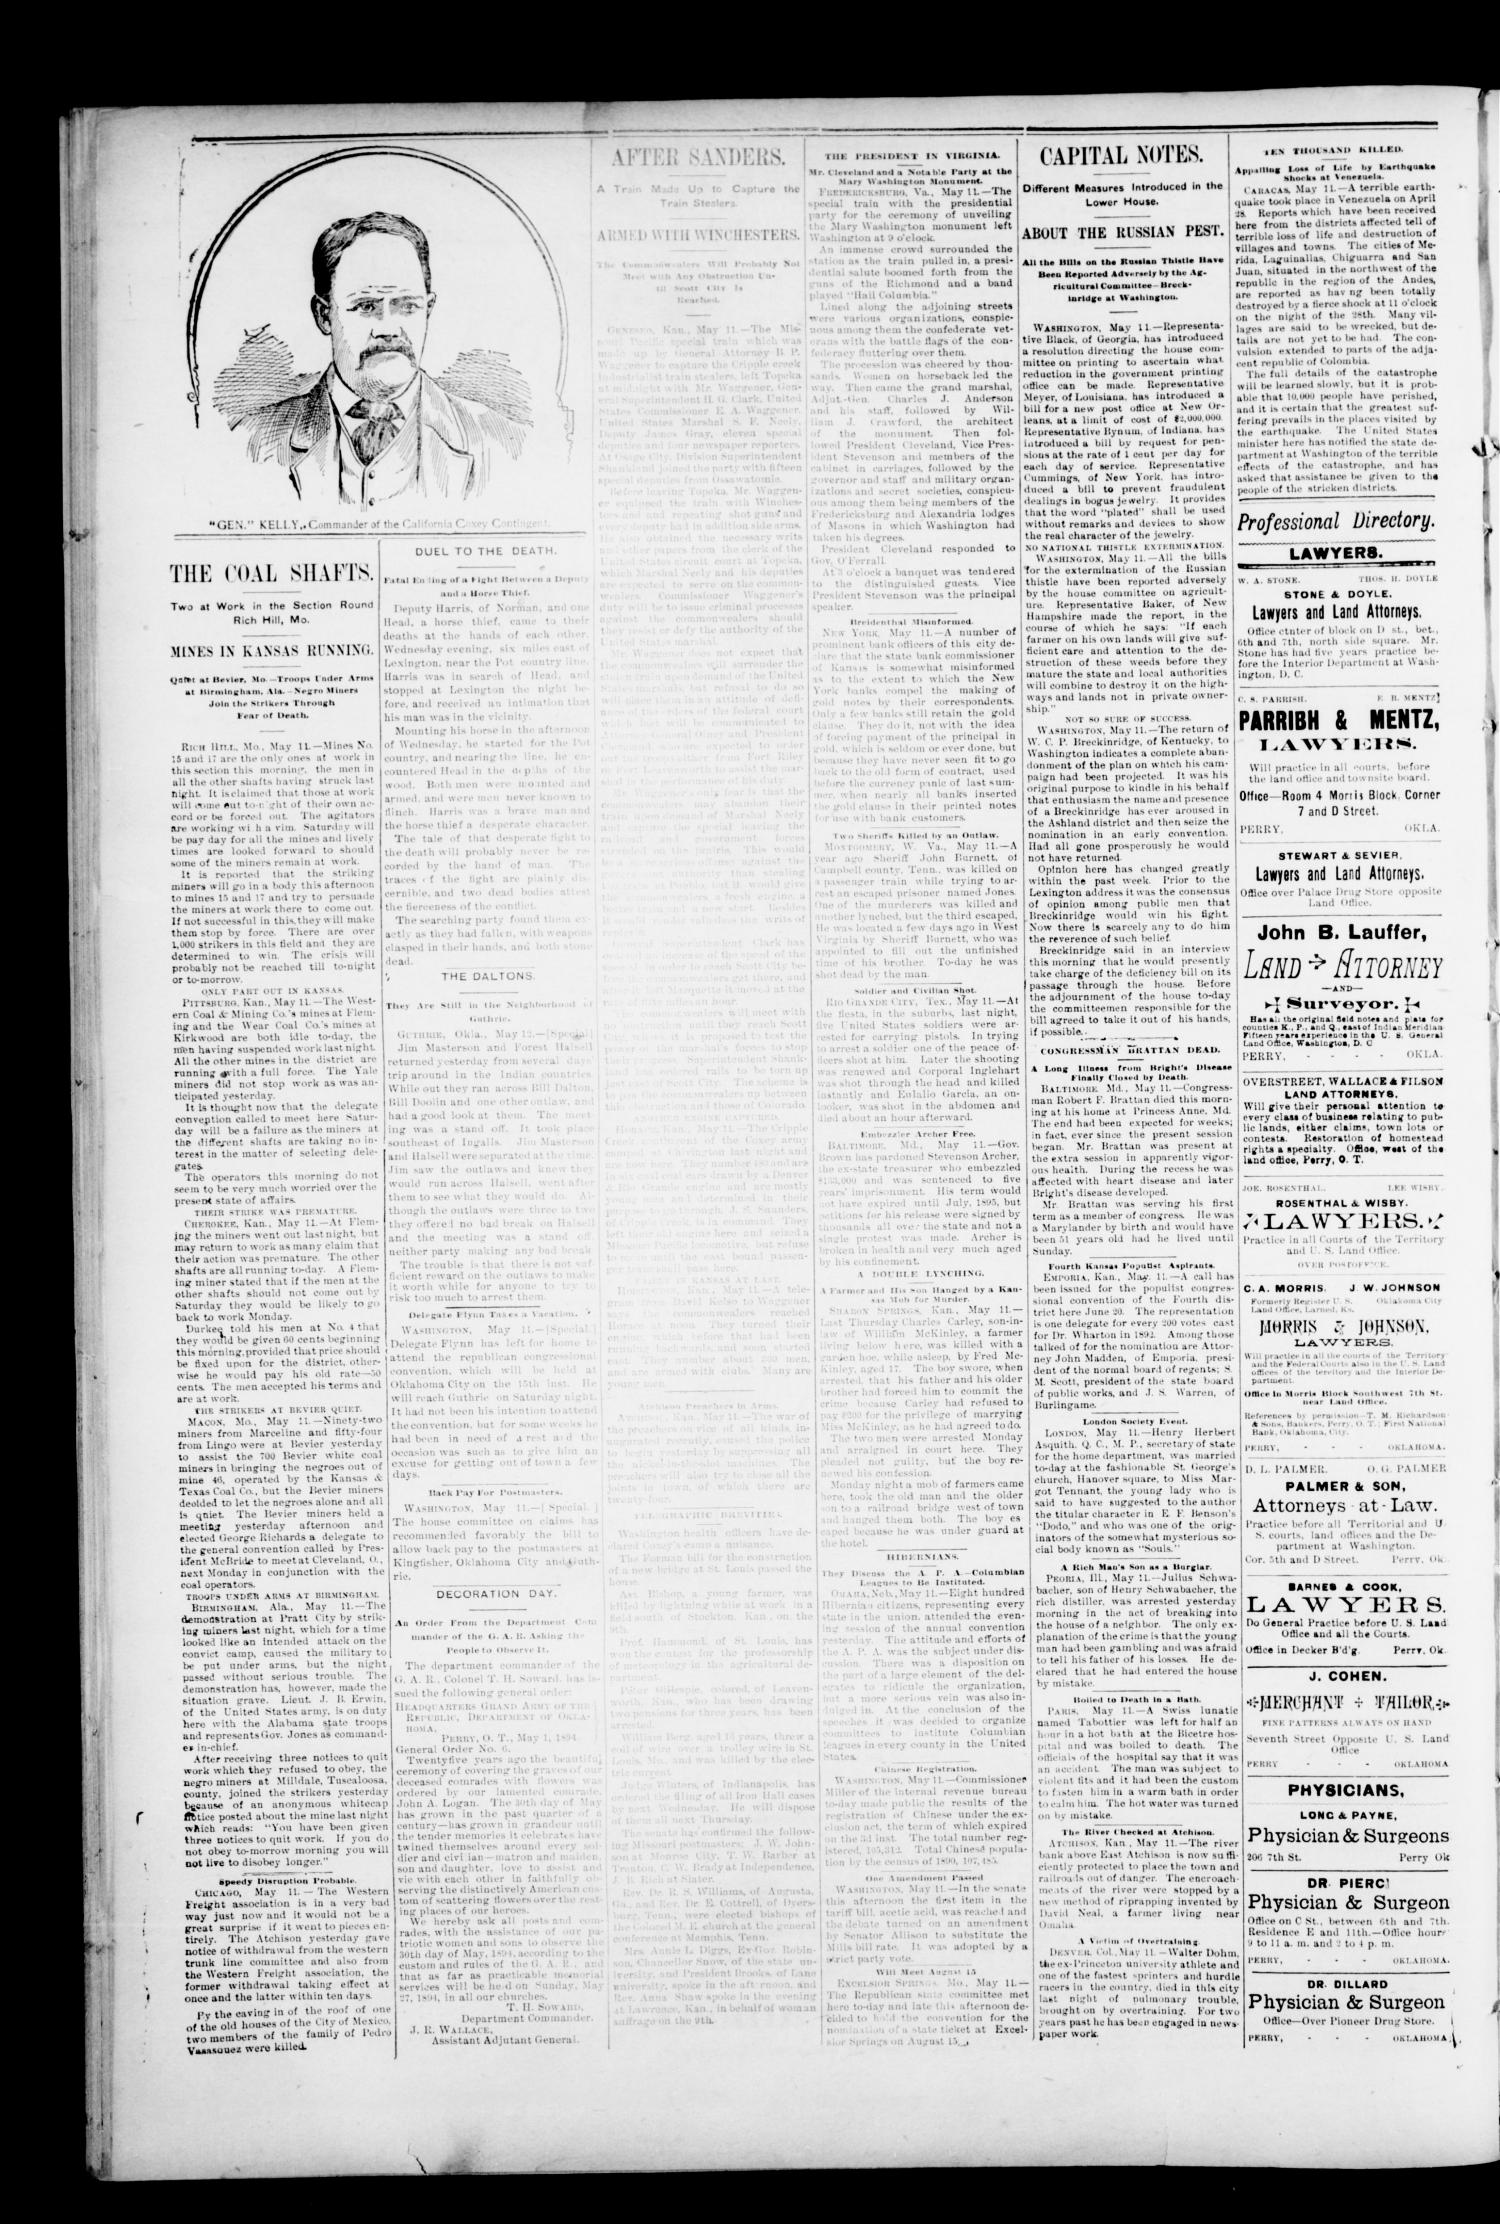 The Perry Daily Times. (Perry, Okla.), Vol. 1, No. 200, Ed. 1 Saturday, May 12, 1894                                                                                                      [Sequence #]: 4 of 4